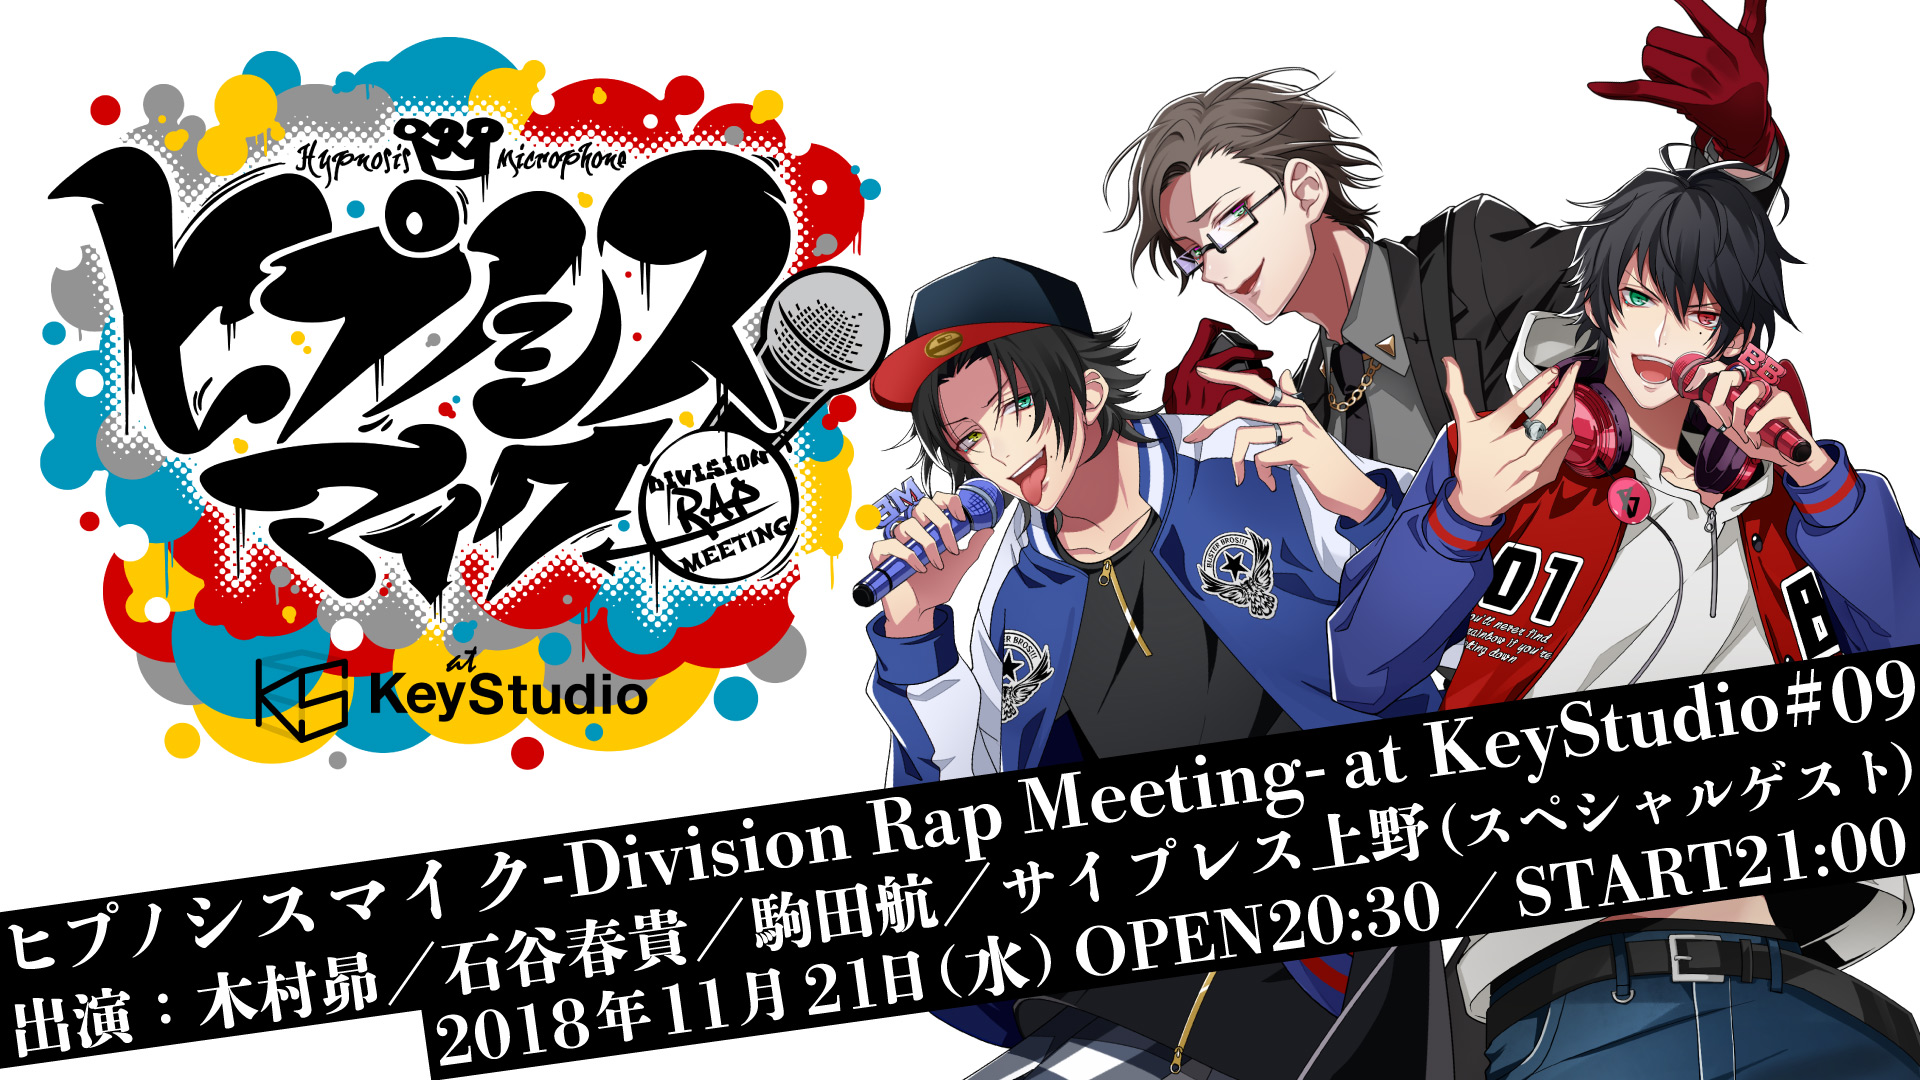 ヒプノシスマイク -Division Rap Meeting- at KeyStudio #09